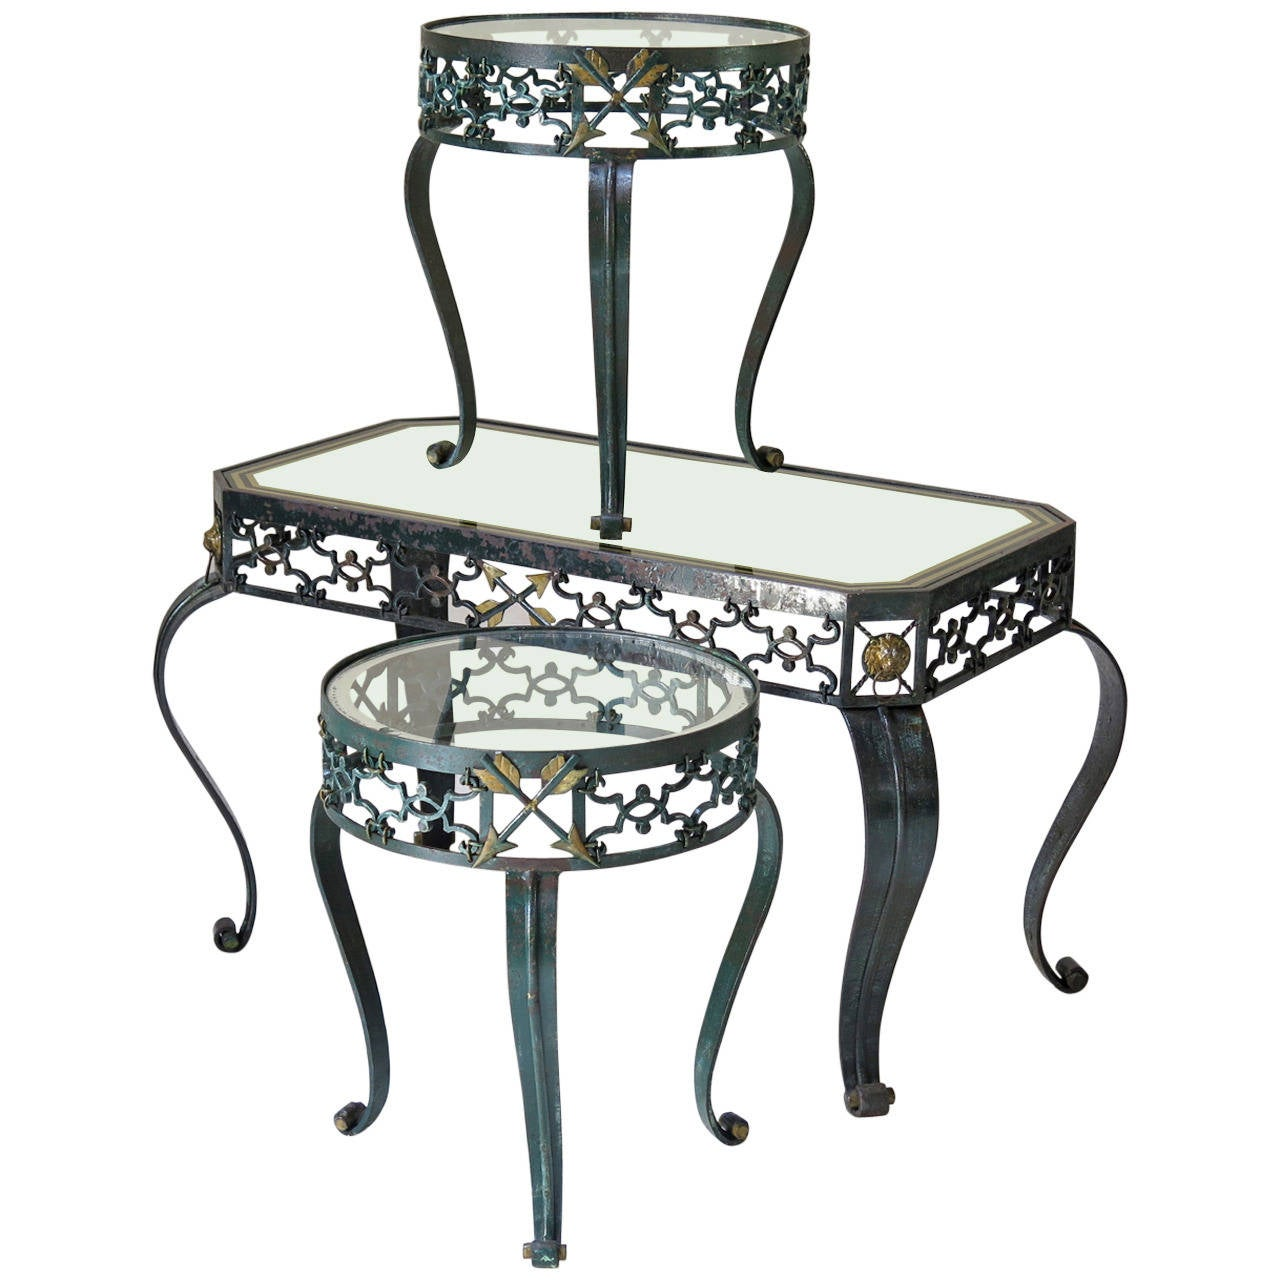 Trio of art deco wrought iron coffee tables france 1940s for sale at 1stdibs Wrought iron coffee tables